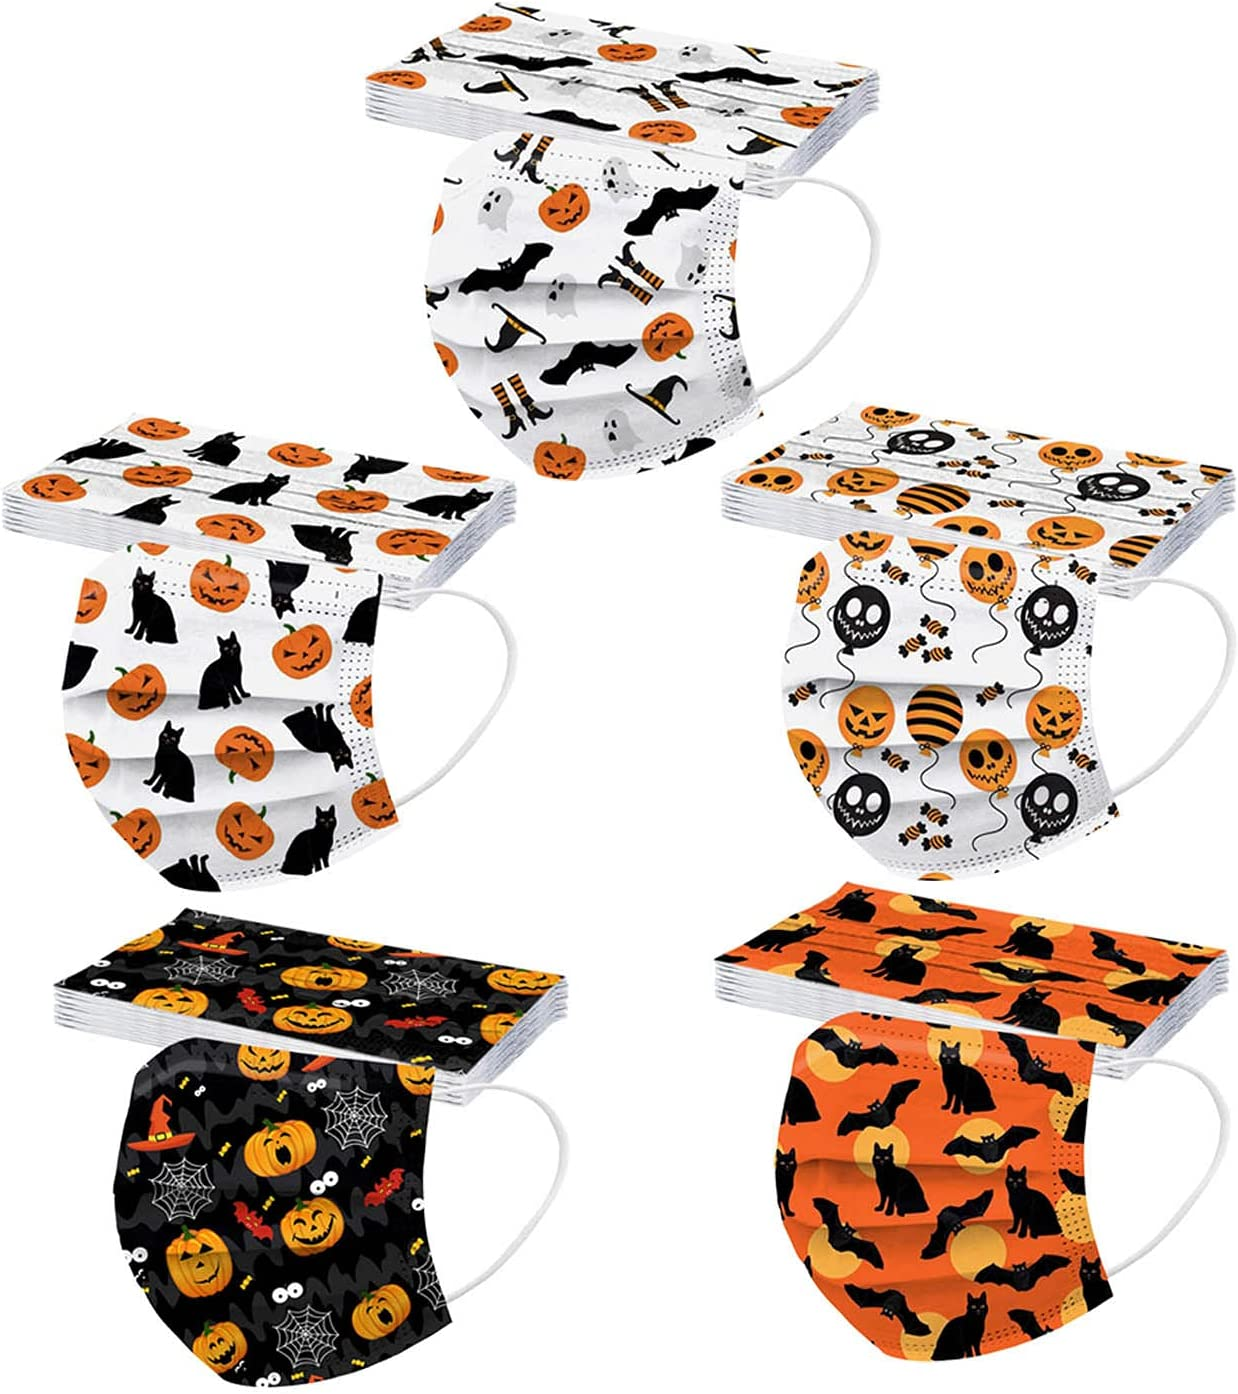 50 Max 84% OFF Pcs Kids Disposable Face_Masks f Trust Printed Halloween Facemasks